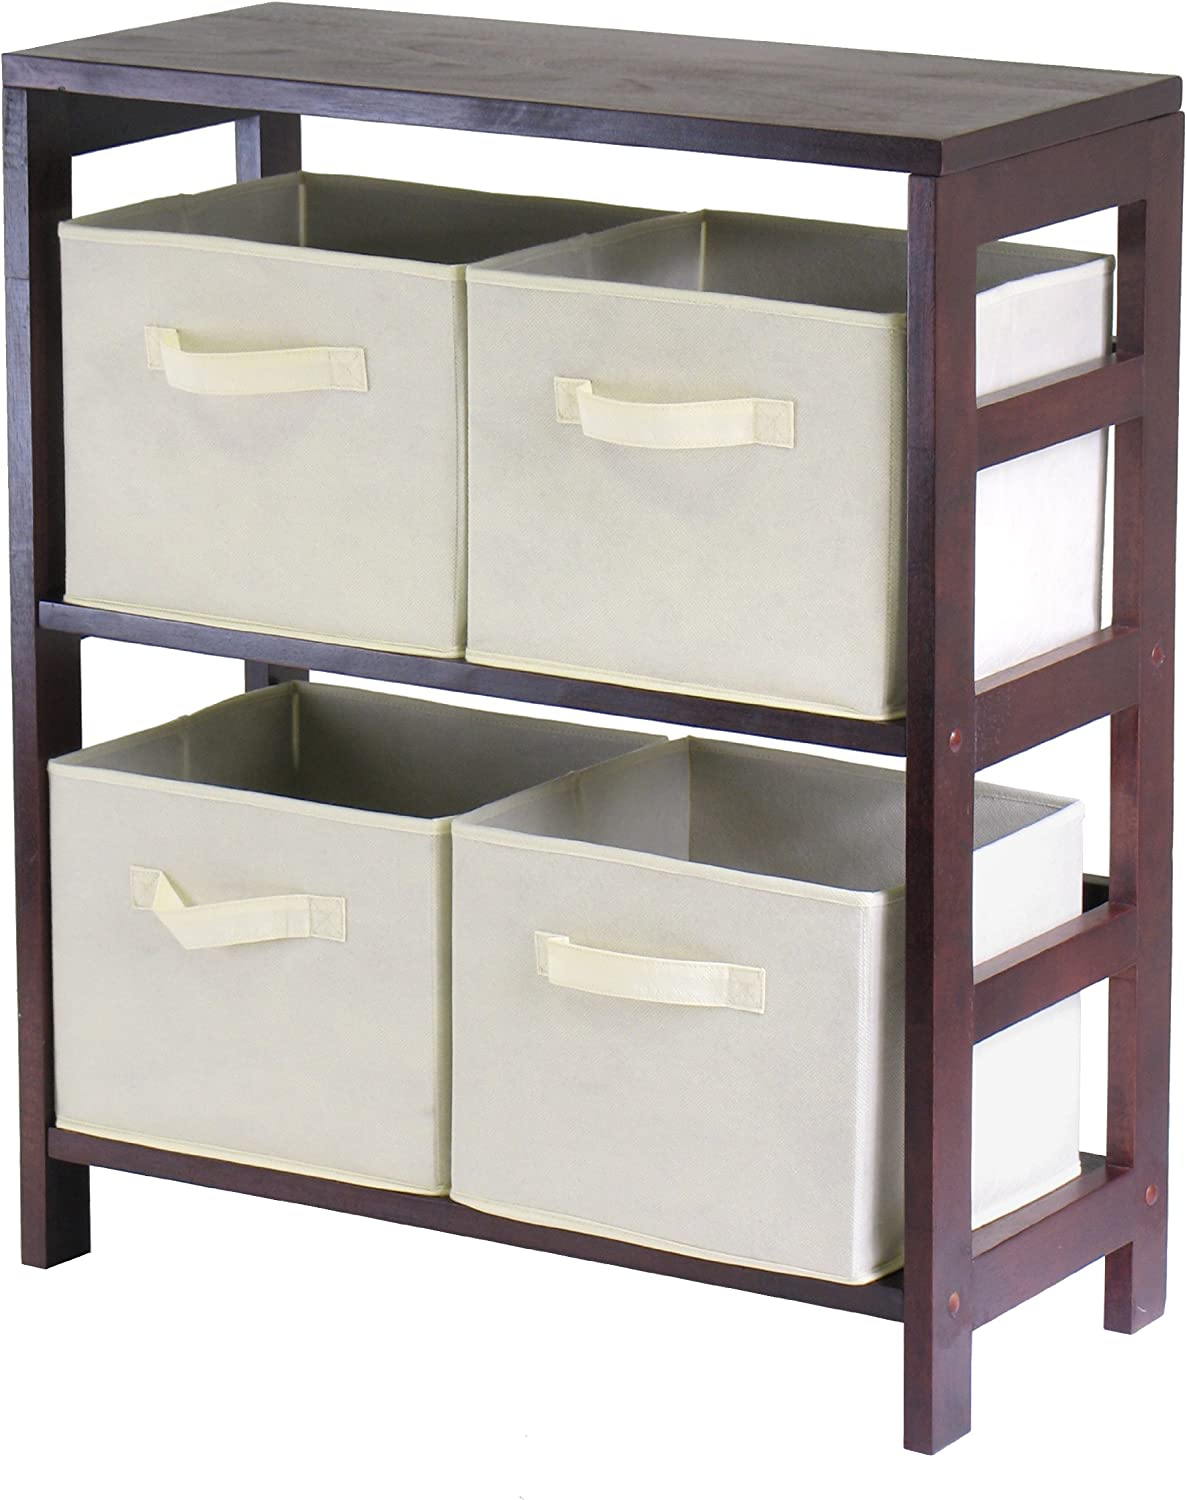 Winsome Wood Capri 2 Section Storage Shelf 4 Our shop OFFers Los Angeles Mall the best service Fab with Beige